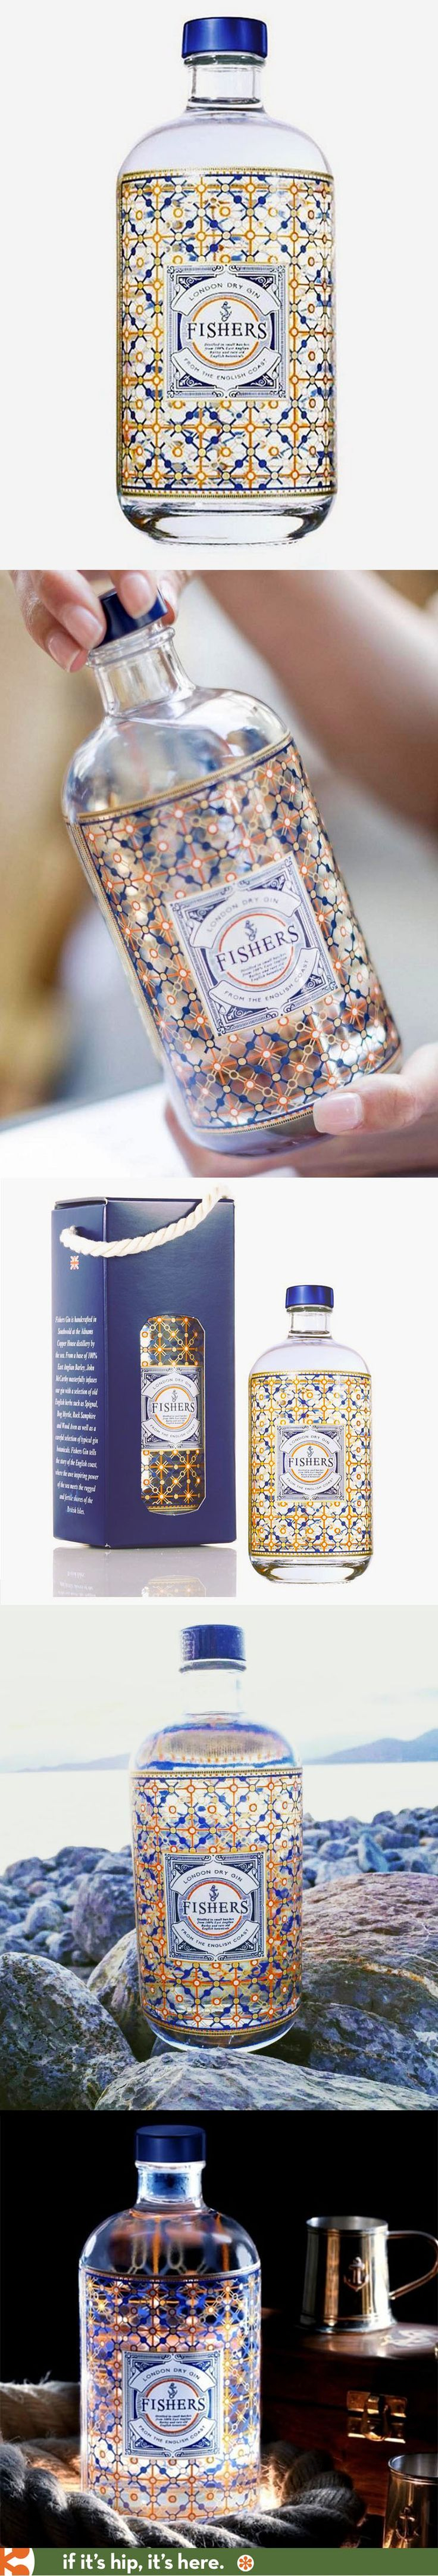 Fisher's Gin has a beautiful bottle and nice box.